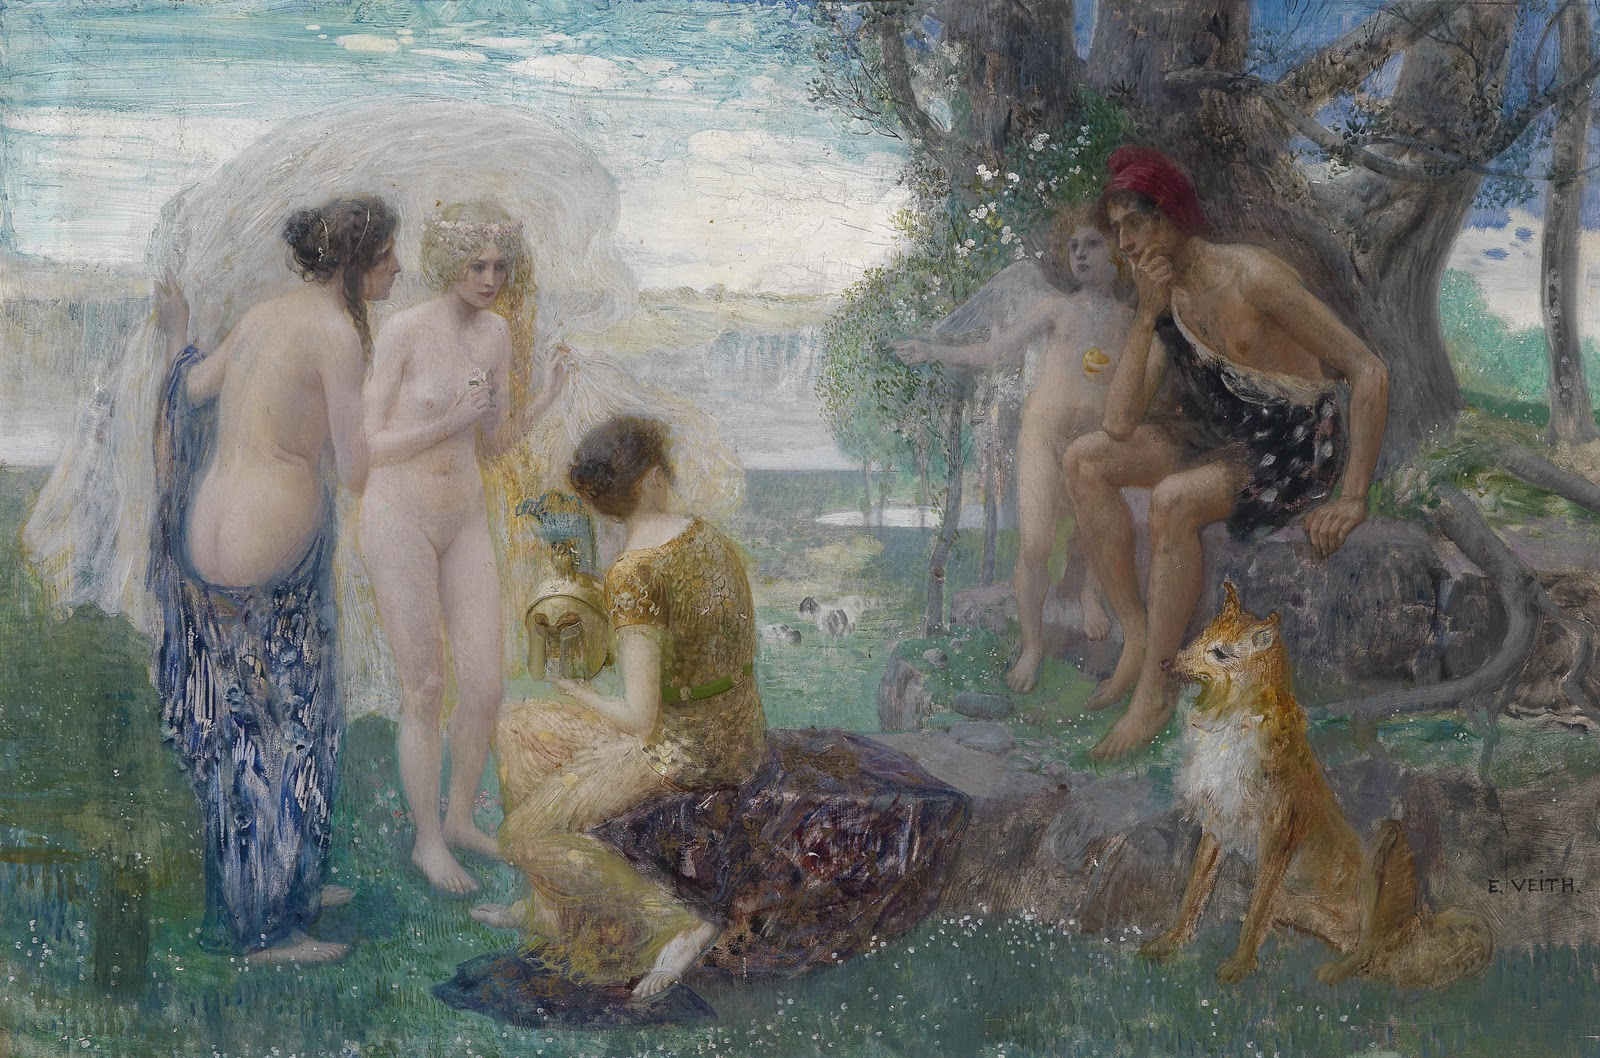 Eduard Veith paris